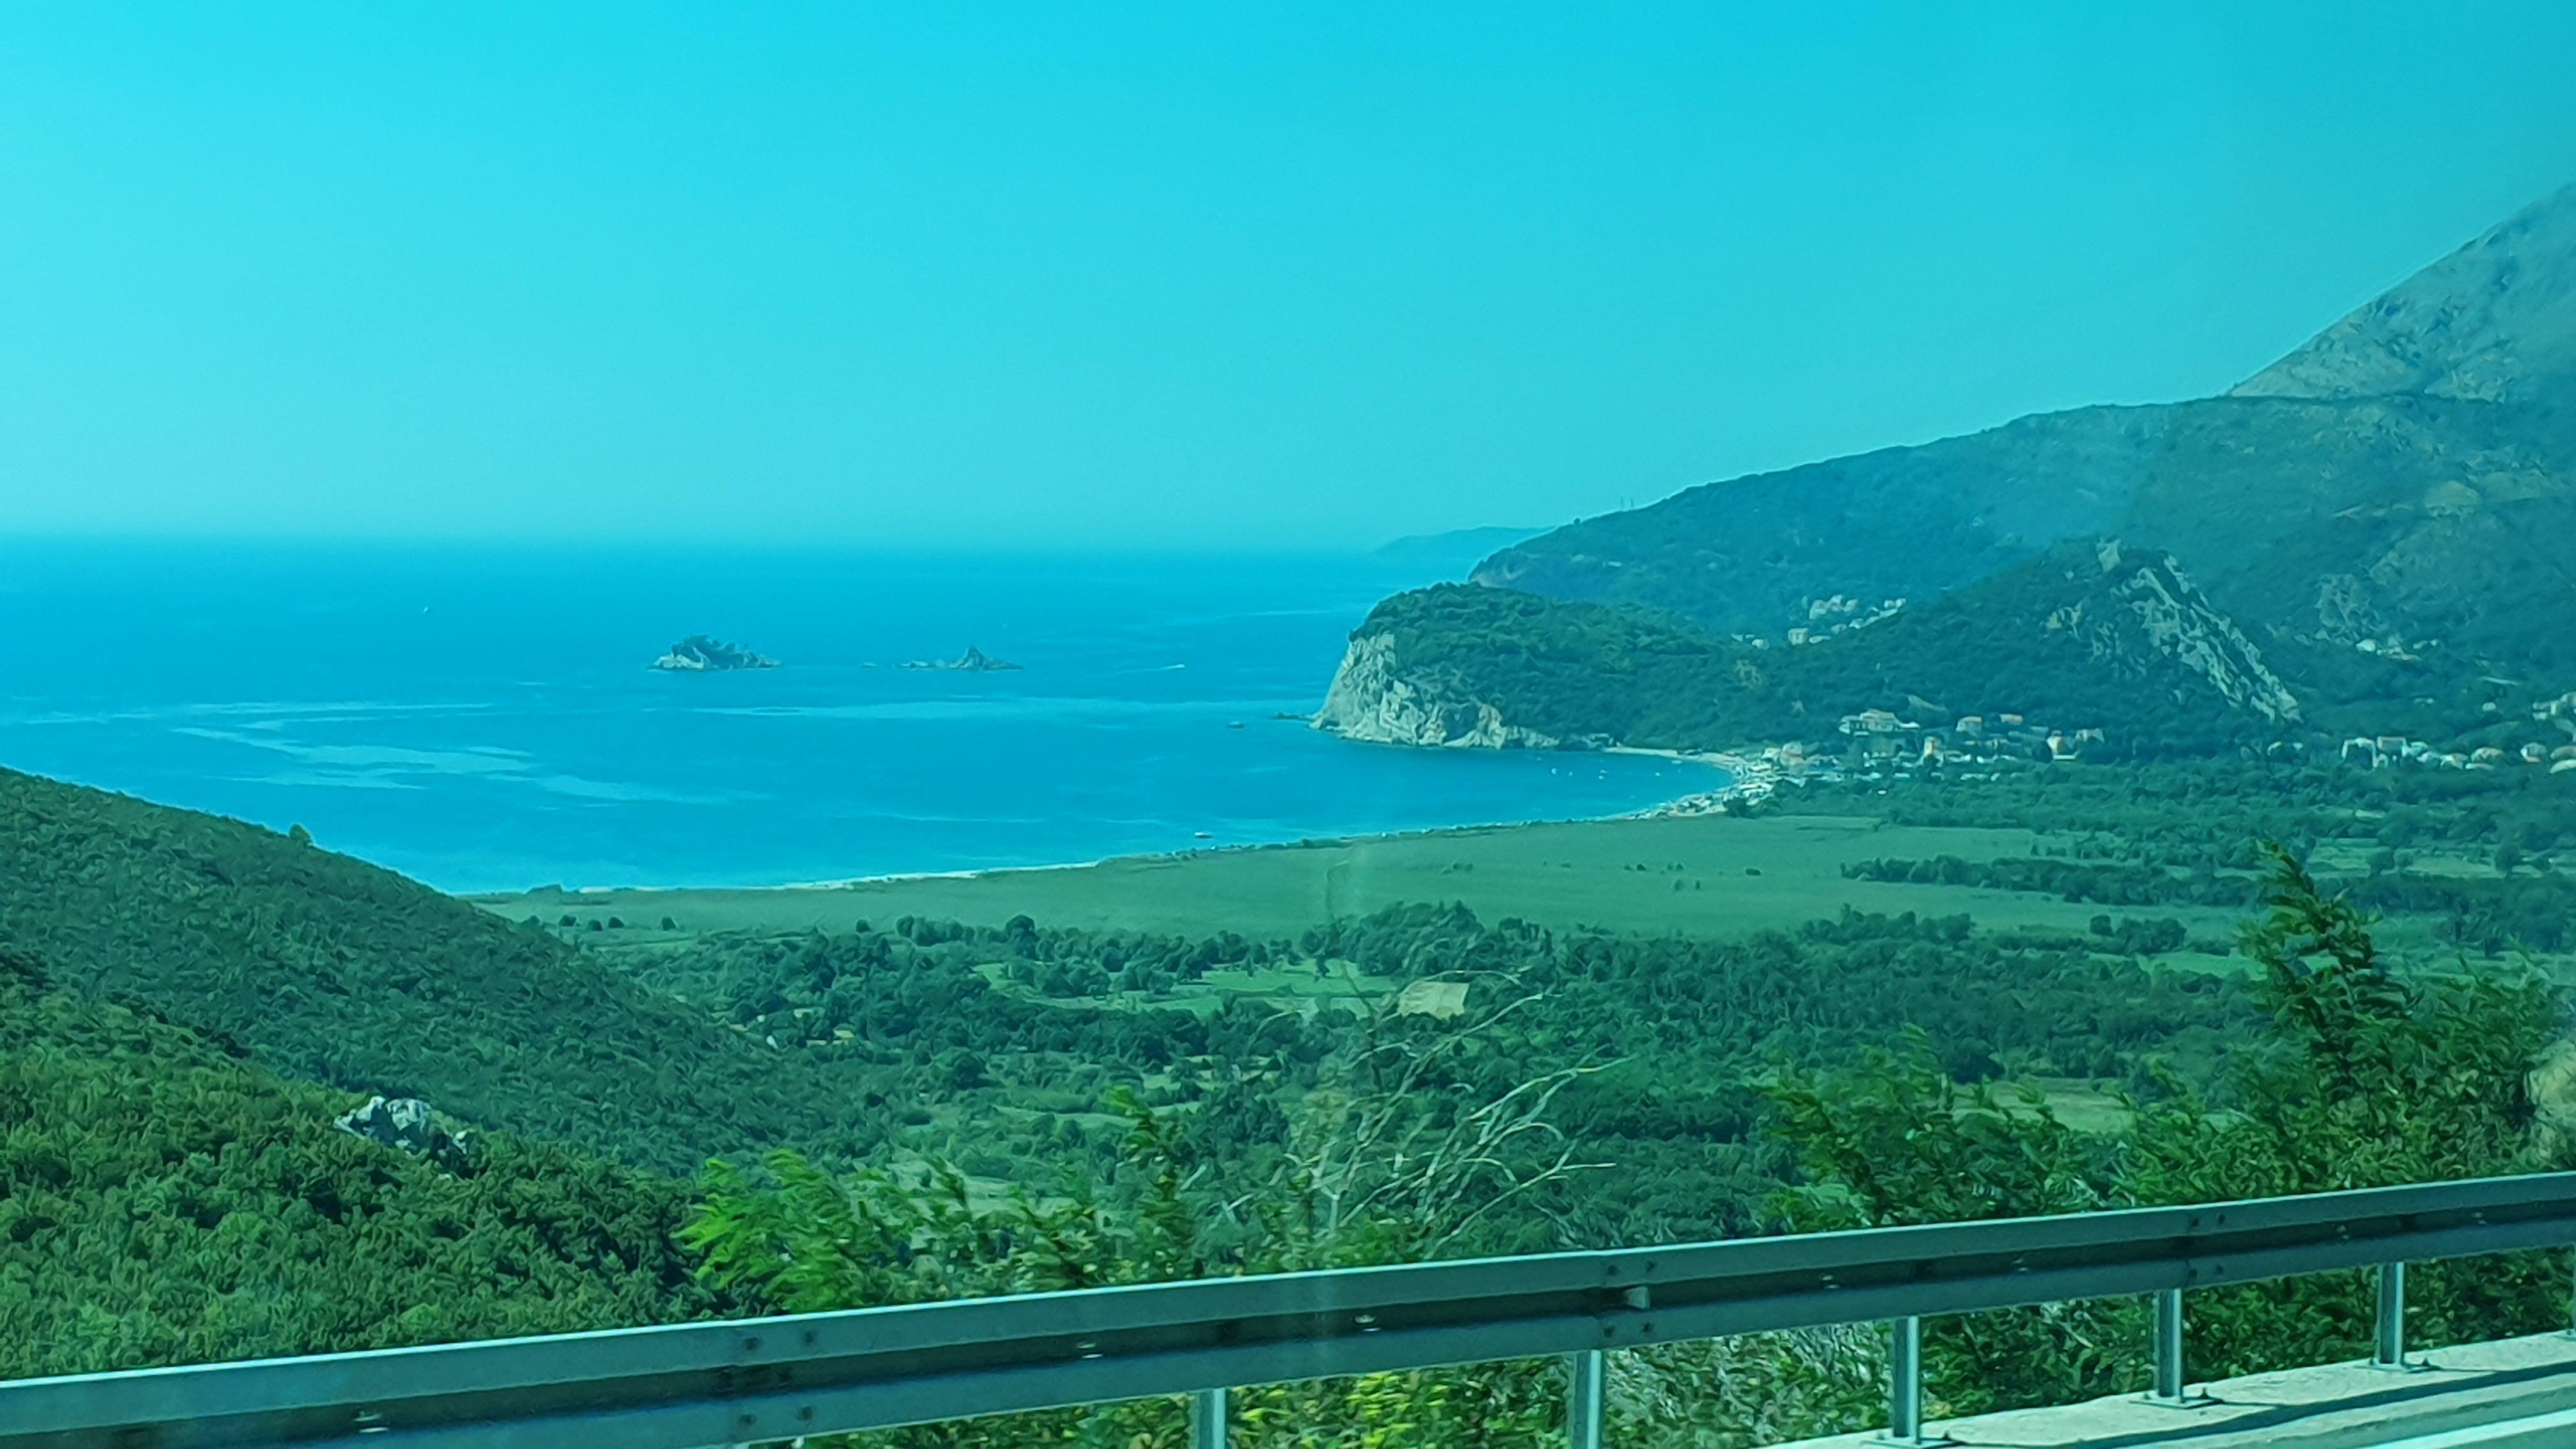 panoramic view of sutamore beach from the highway